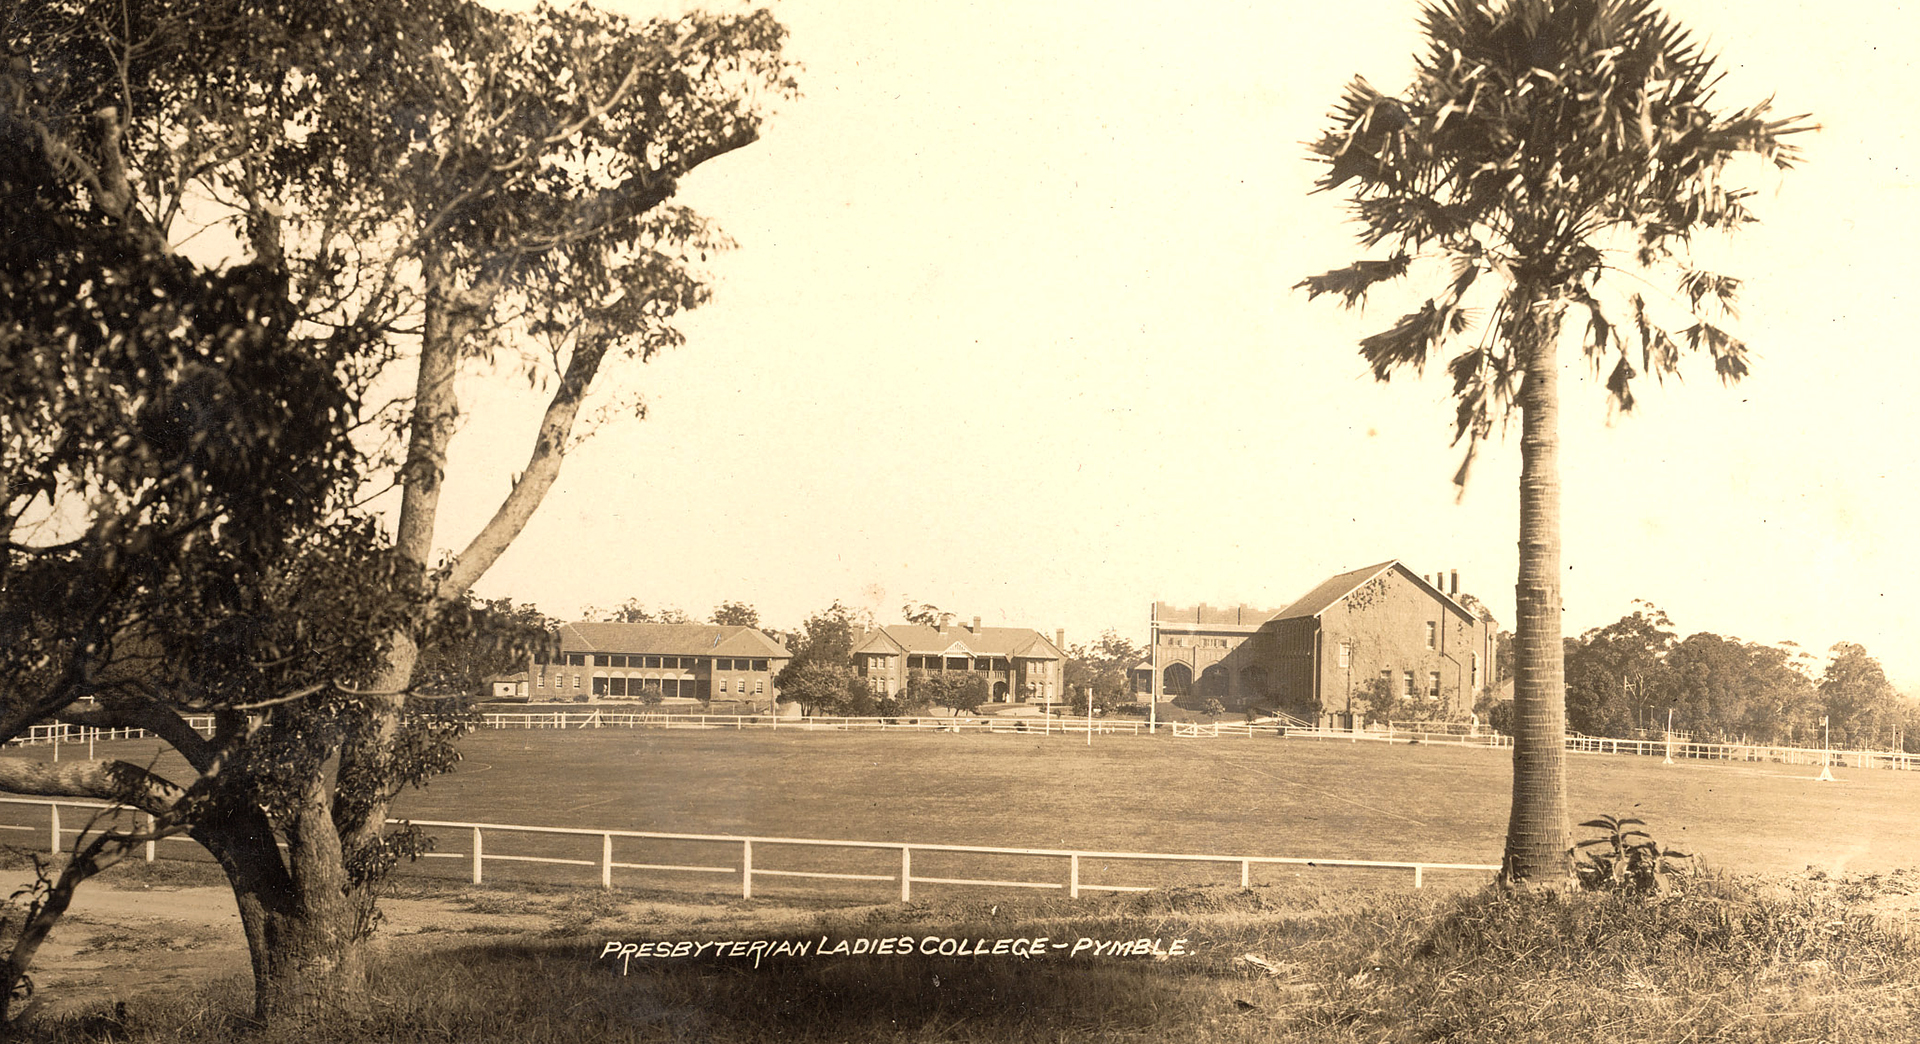 Presbyterian Ladies College, Pymble in the 1920's